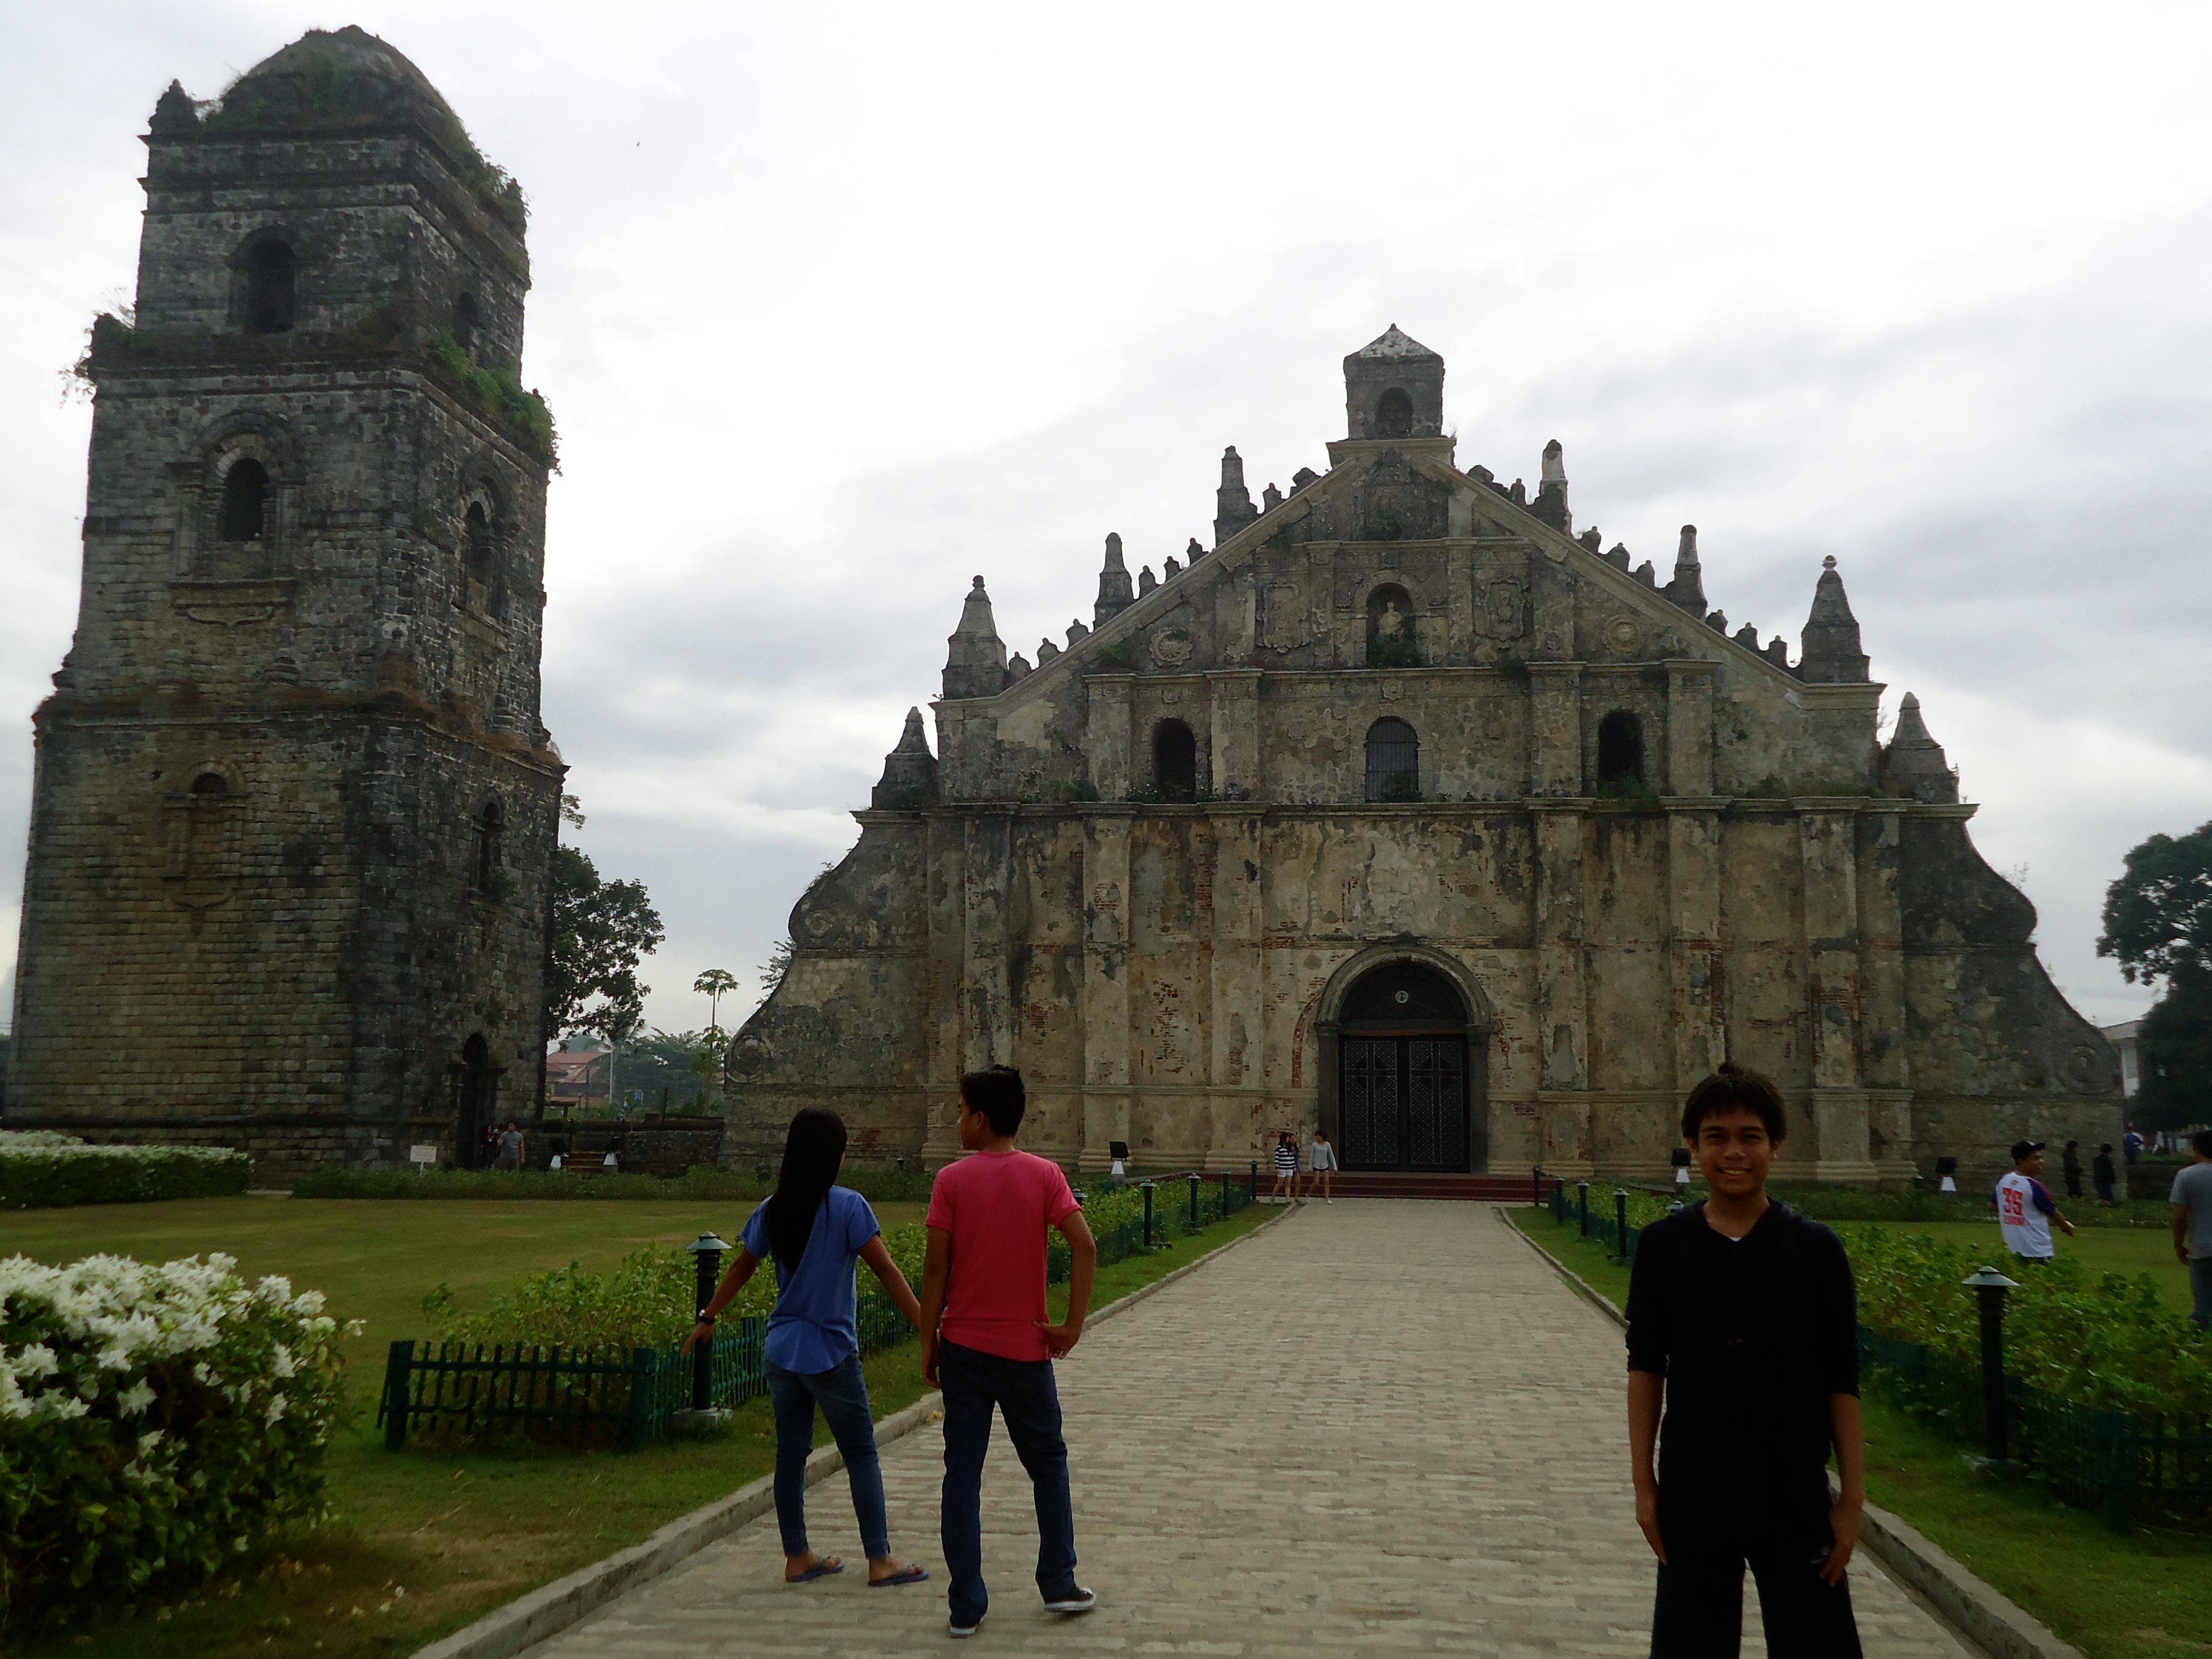 Church of San Agustin in Paoay, Ilocos Norte Baroque Churches of the Philippines - Philippines carlos ortiz